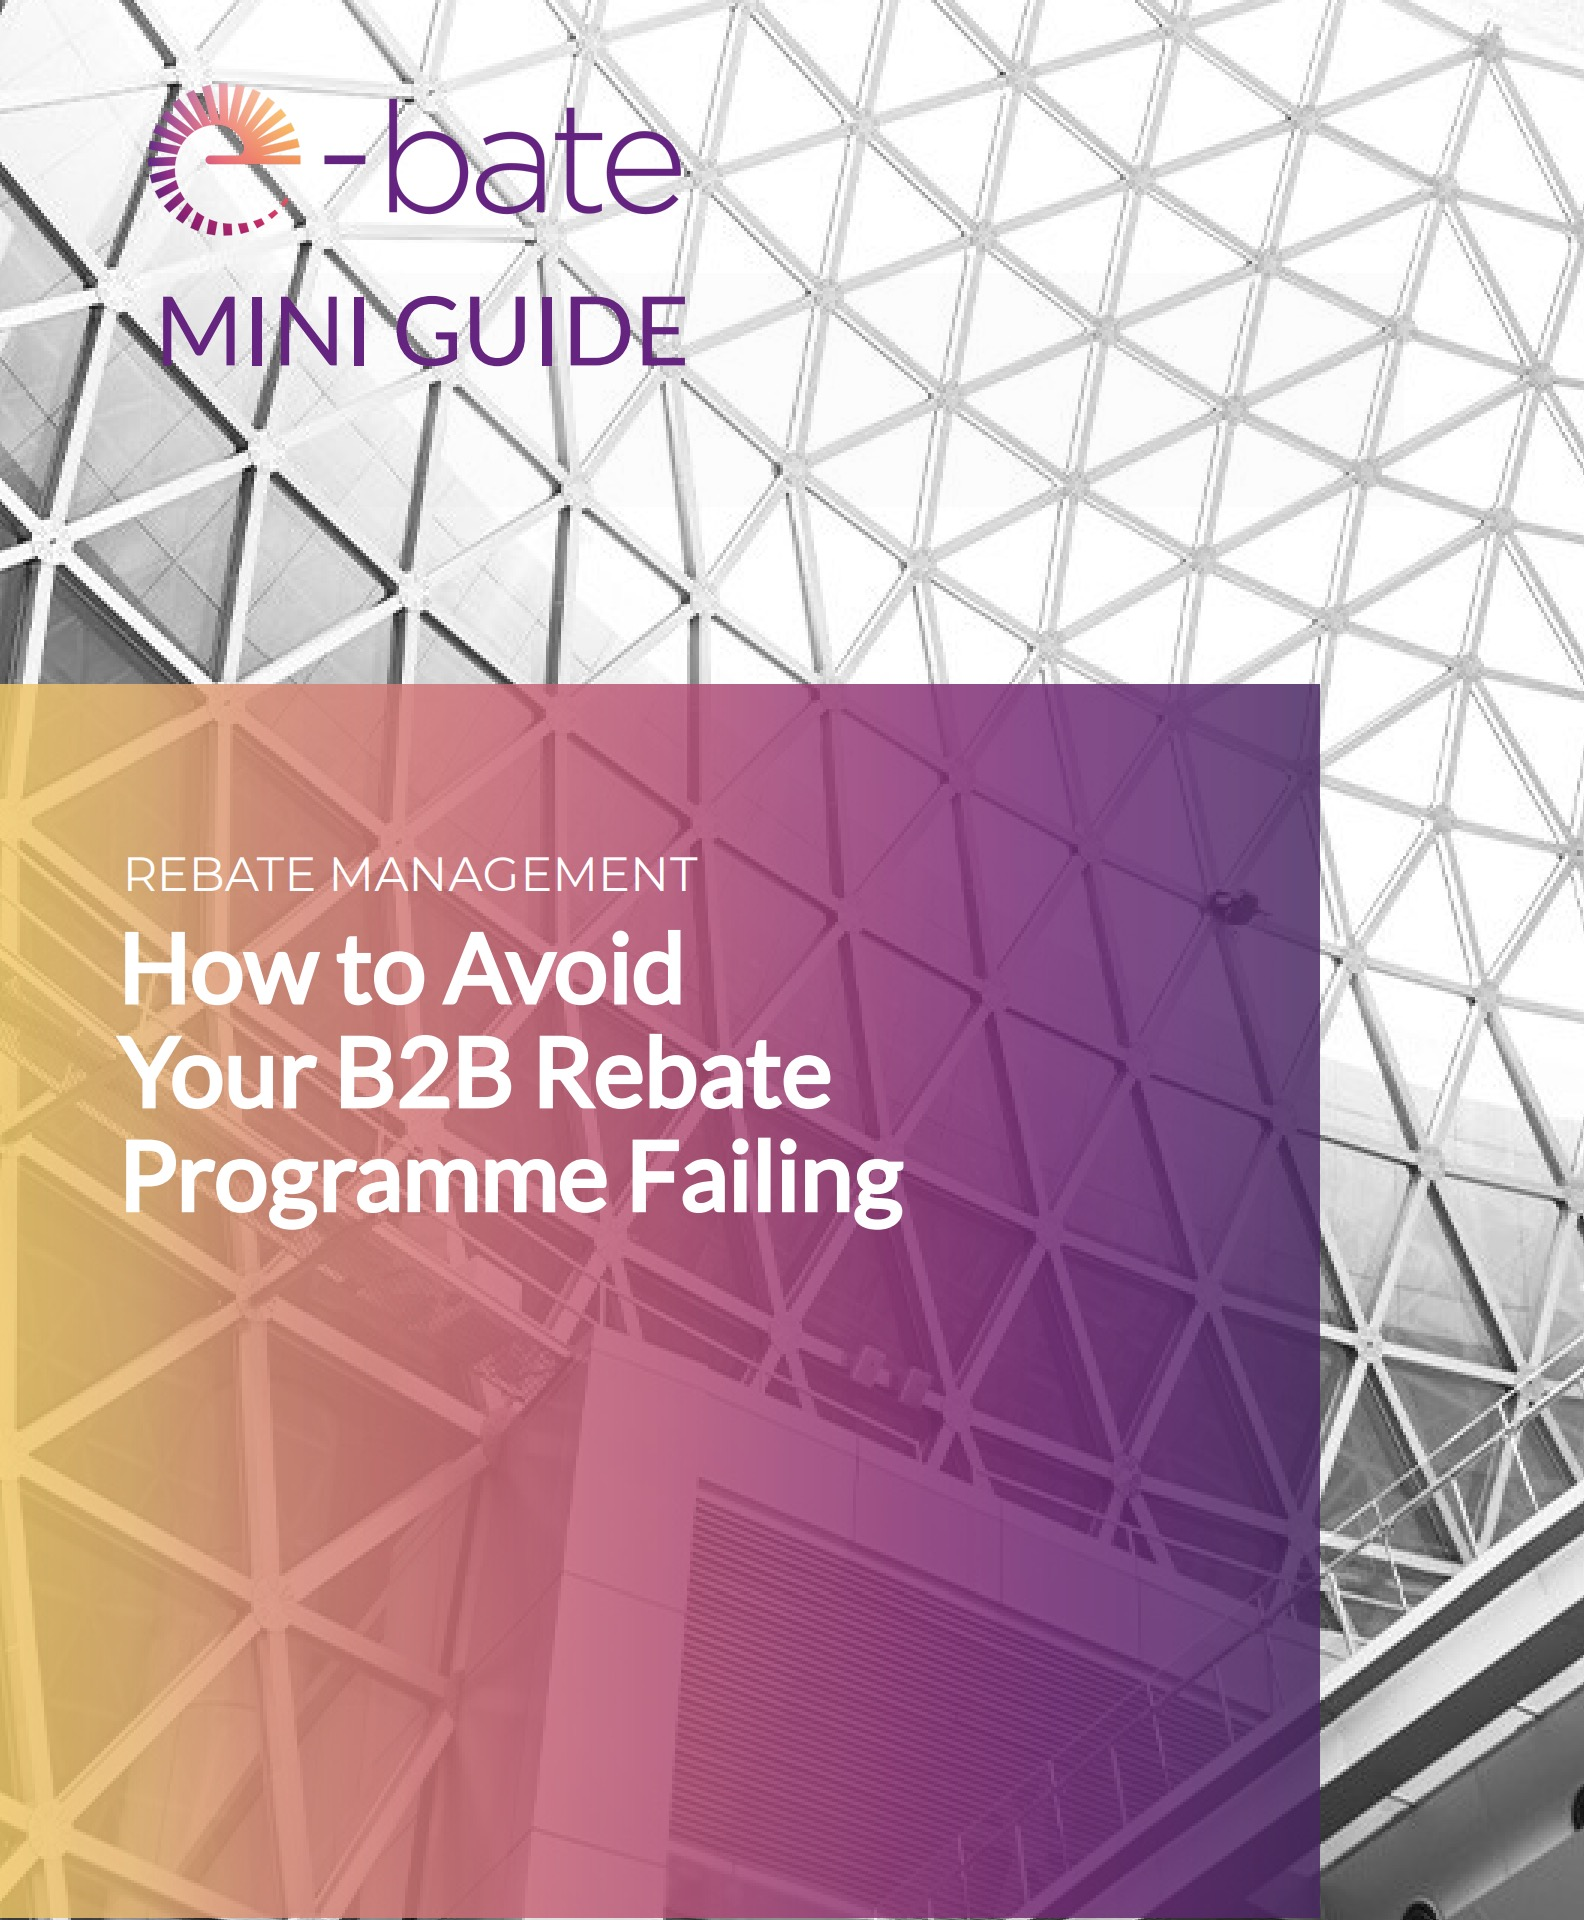 Mini-Guide on How to Avoid Your B2B Rebate Programme Failing